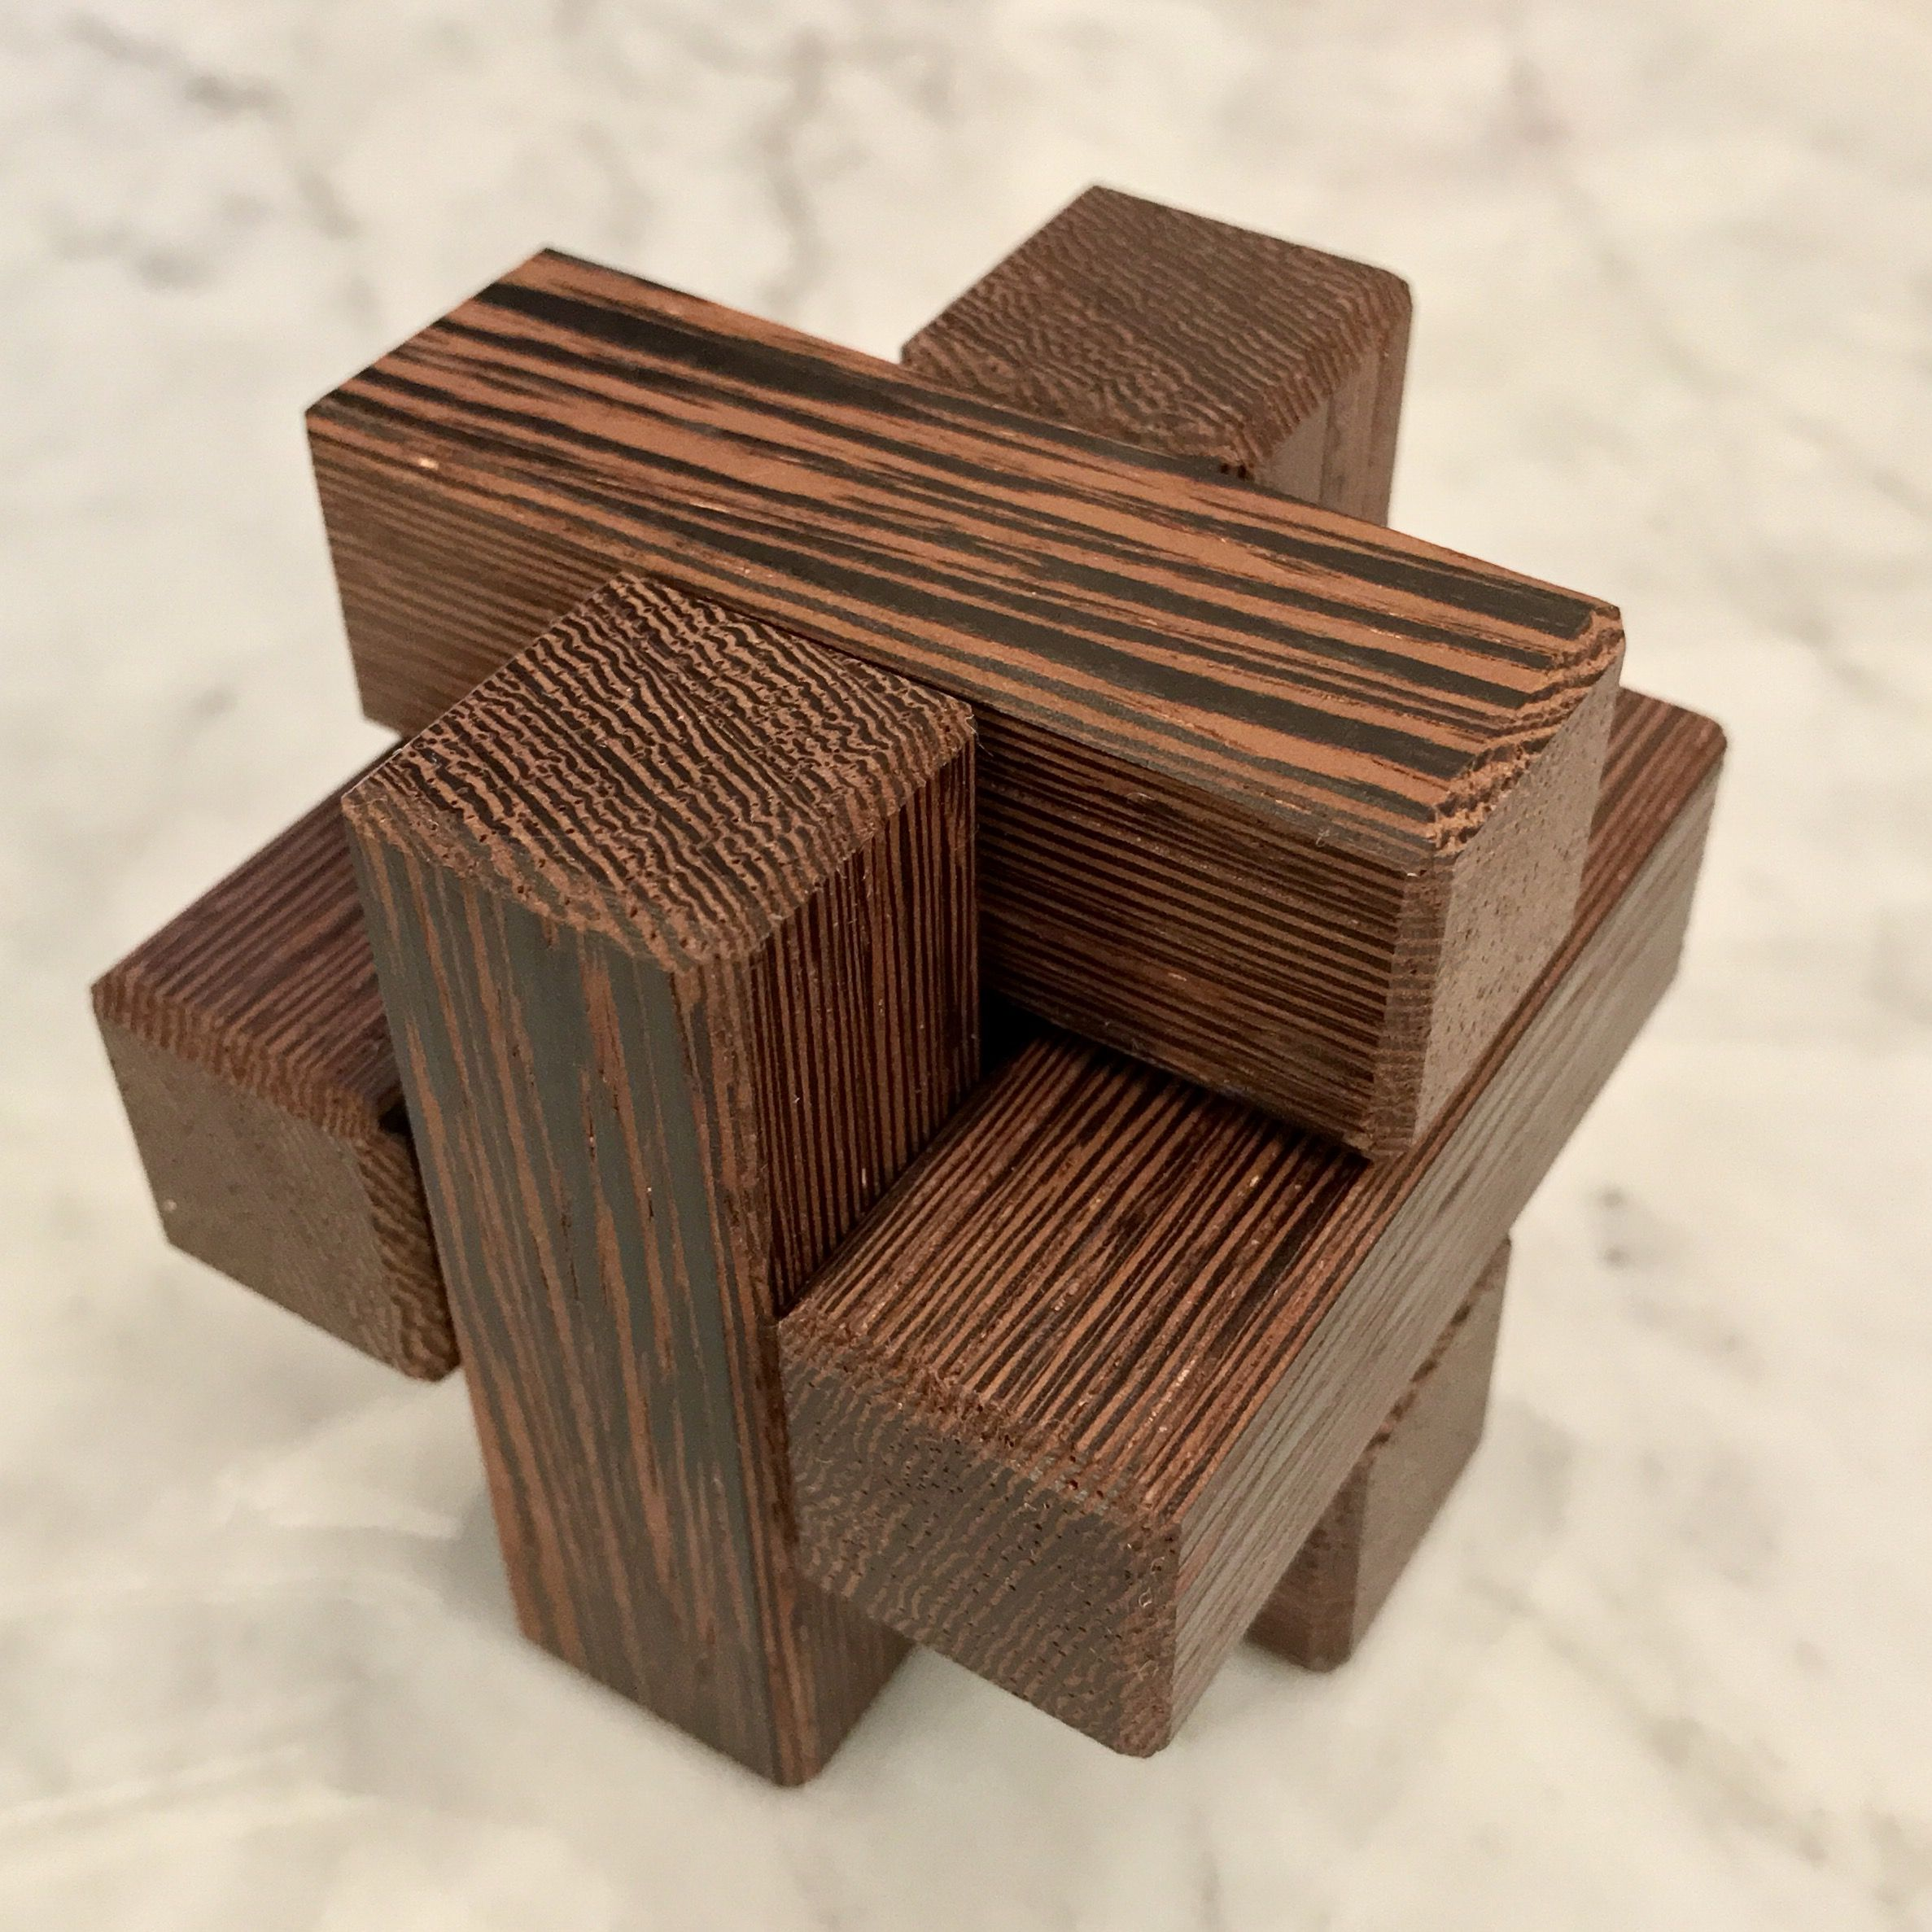 Pin by Marc Wiegers on Puzzles | Wooden puzzles, Design